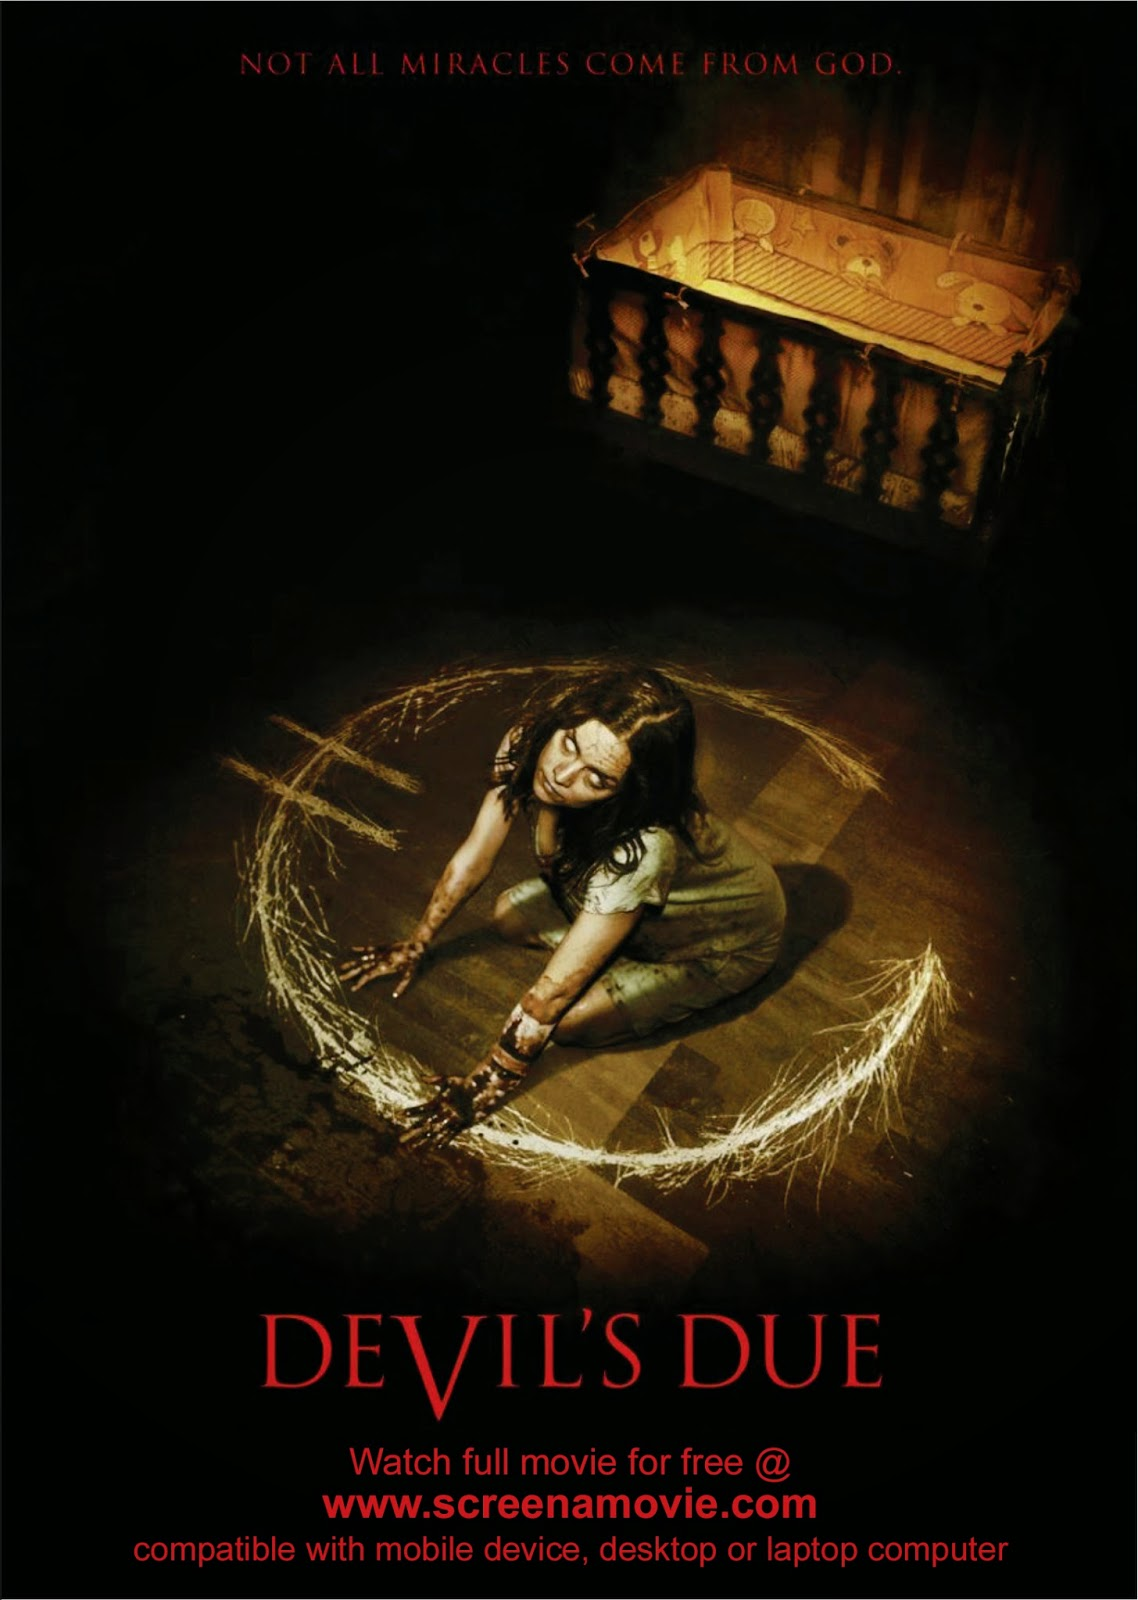 Devil's Due_@screenamovie